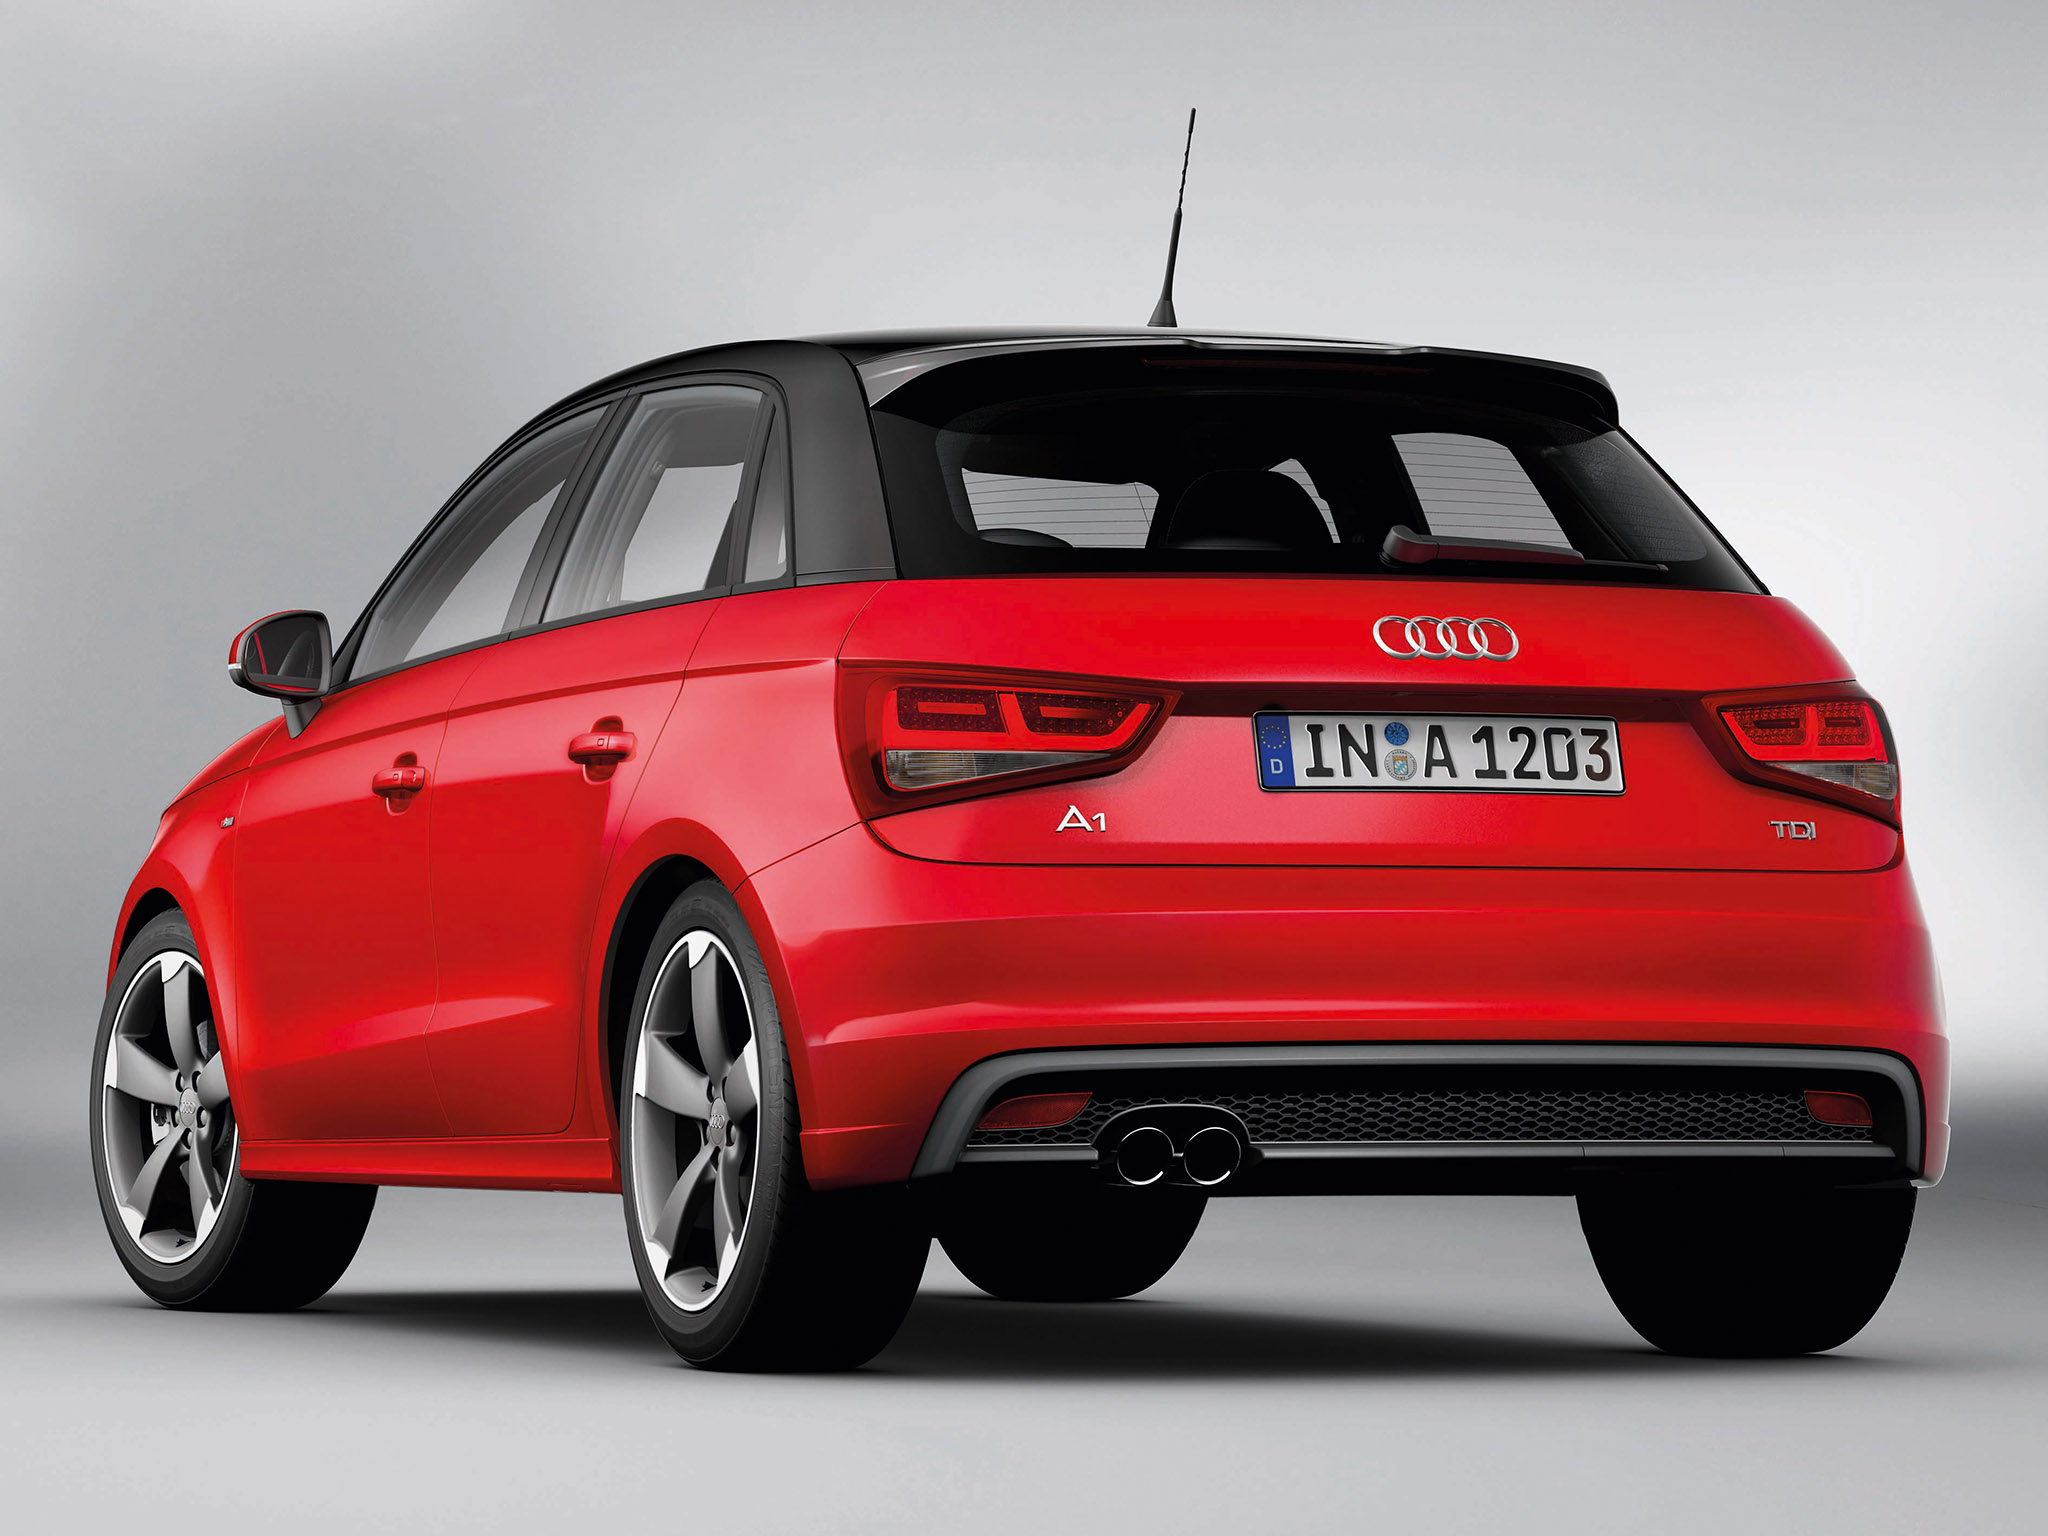 audi a1 sportback s line 2012 audi a1 sportback s line 2012 photo 12 car in pictures car. Black Bedroom Furniture Sets. Home Design Ideas